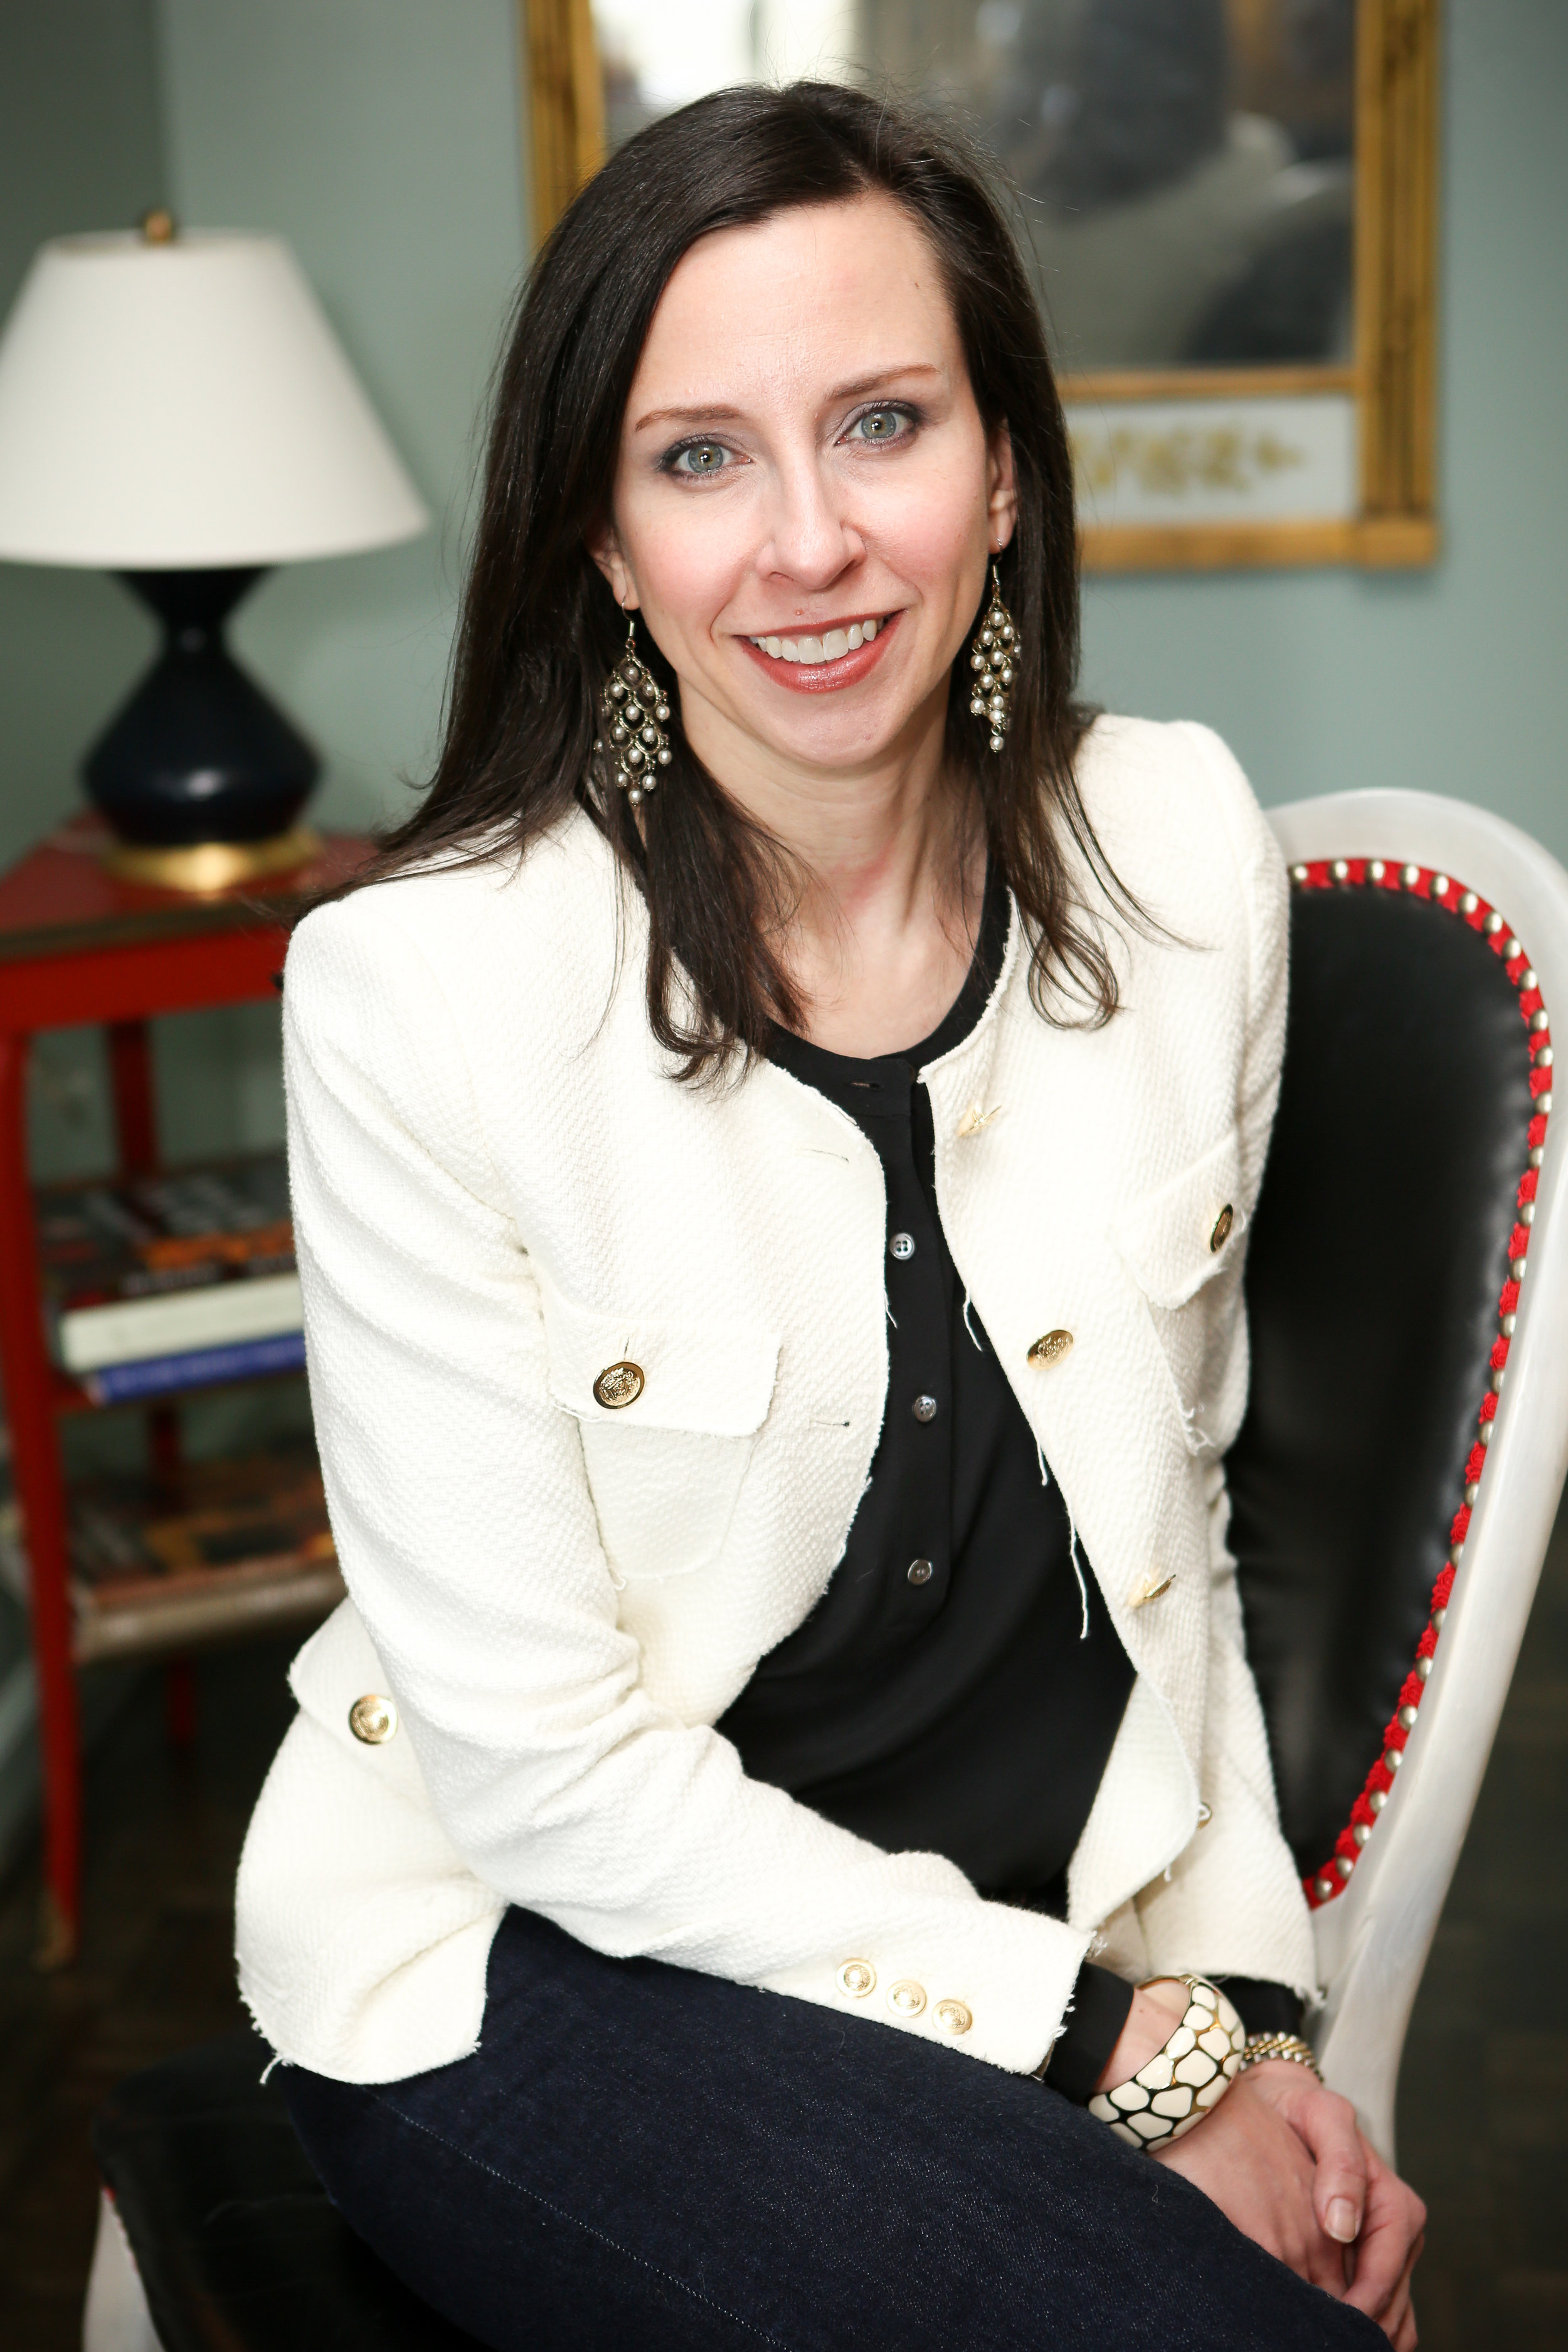 Jennifer Boles, Founder & Editor in Chief of The Peak of Chic